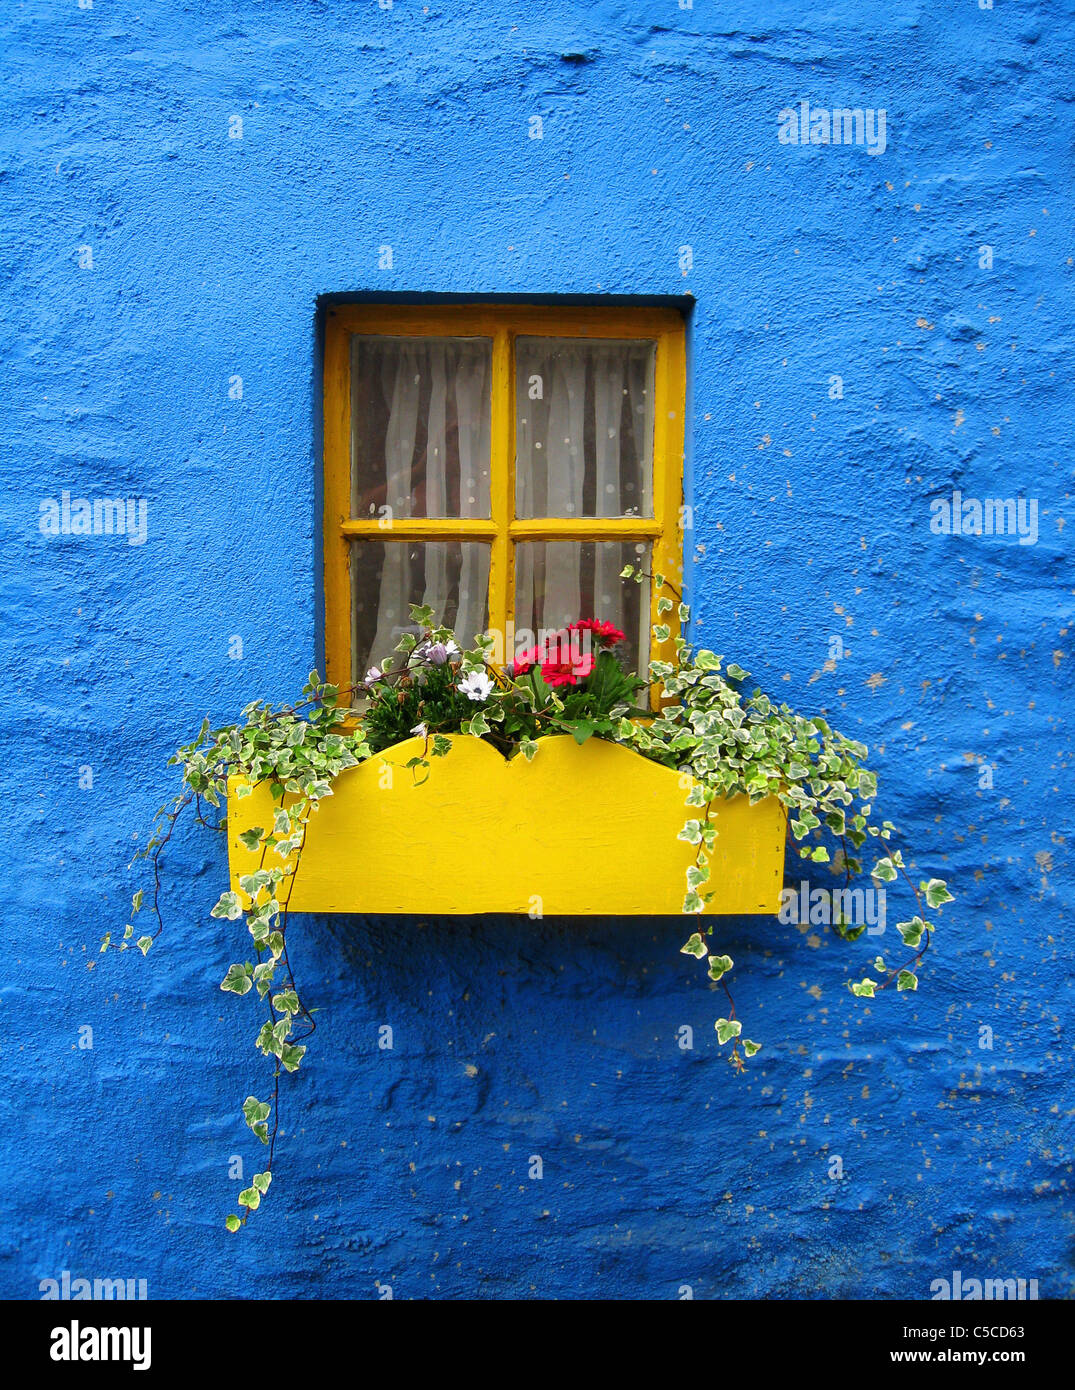 A Yellow Flower Box Under The Window Of A Blue House; Kinsale, County Cork, Ireland - Stock Image